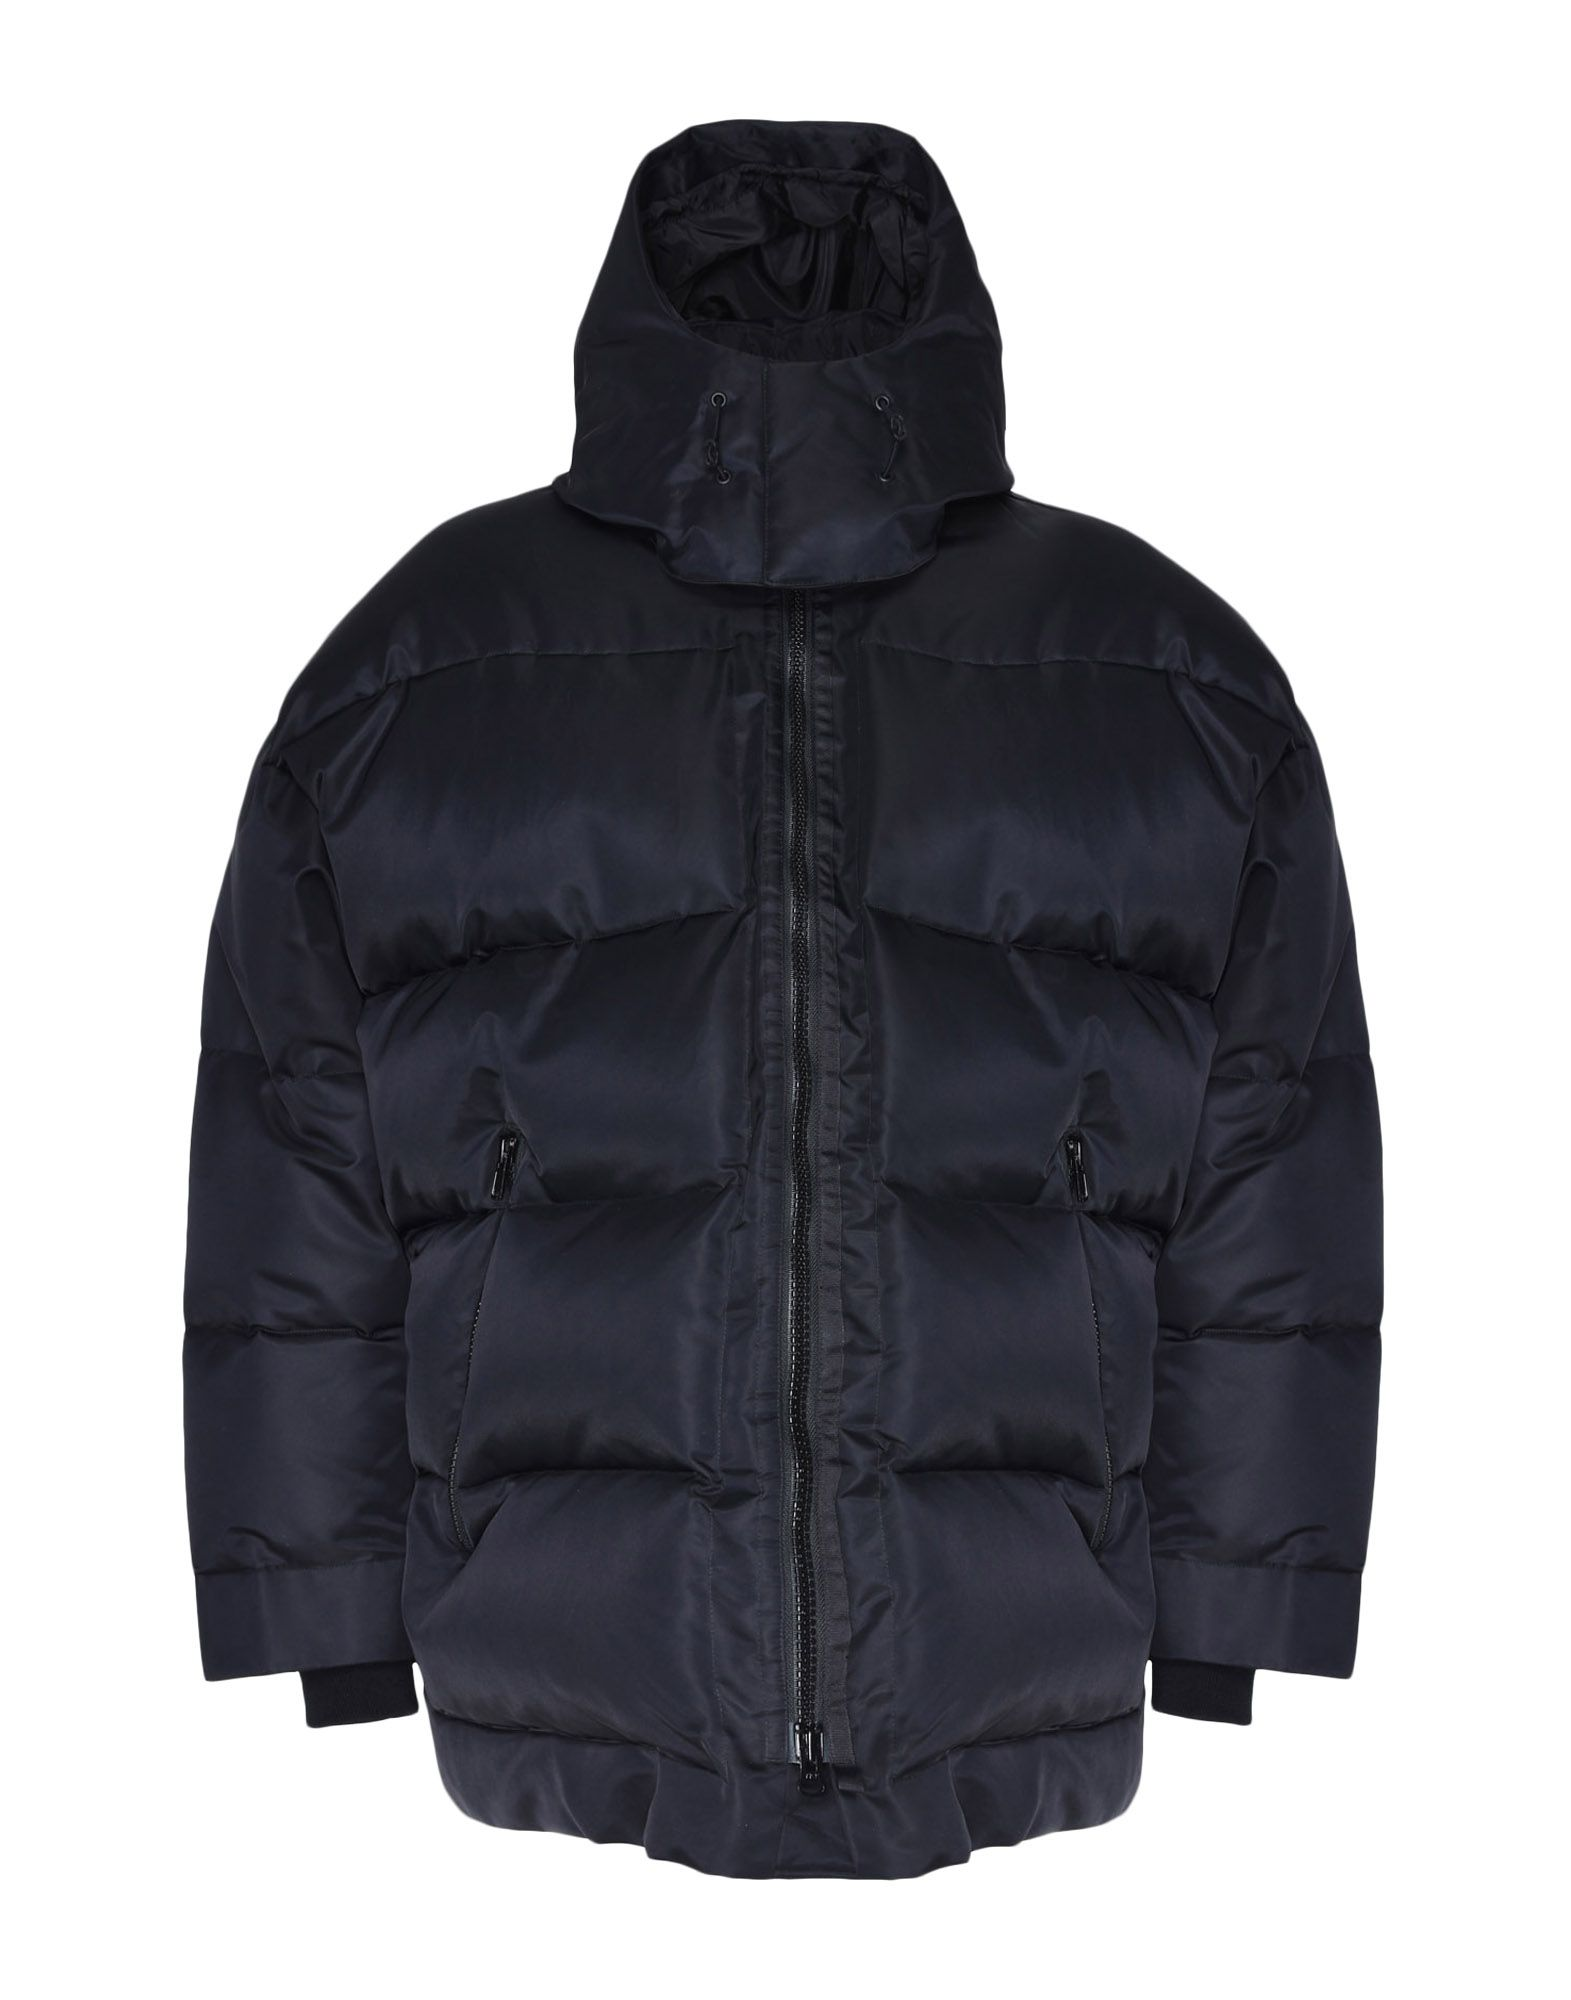 Y-3 Y-3 Engineered Down Jacket Down jacket Man f